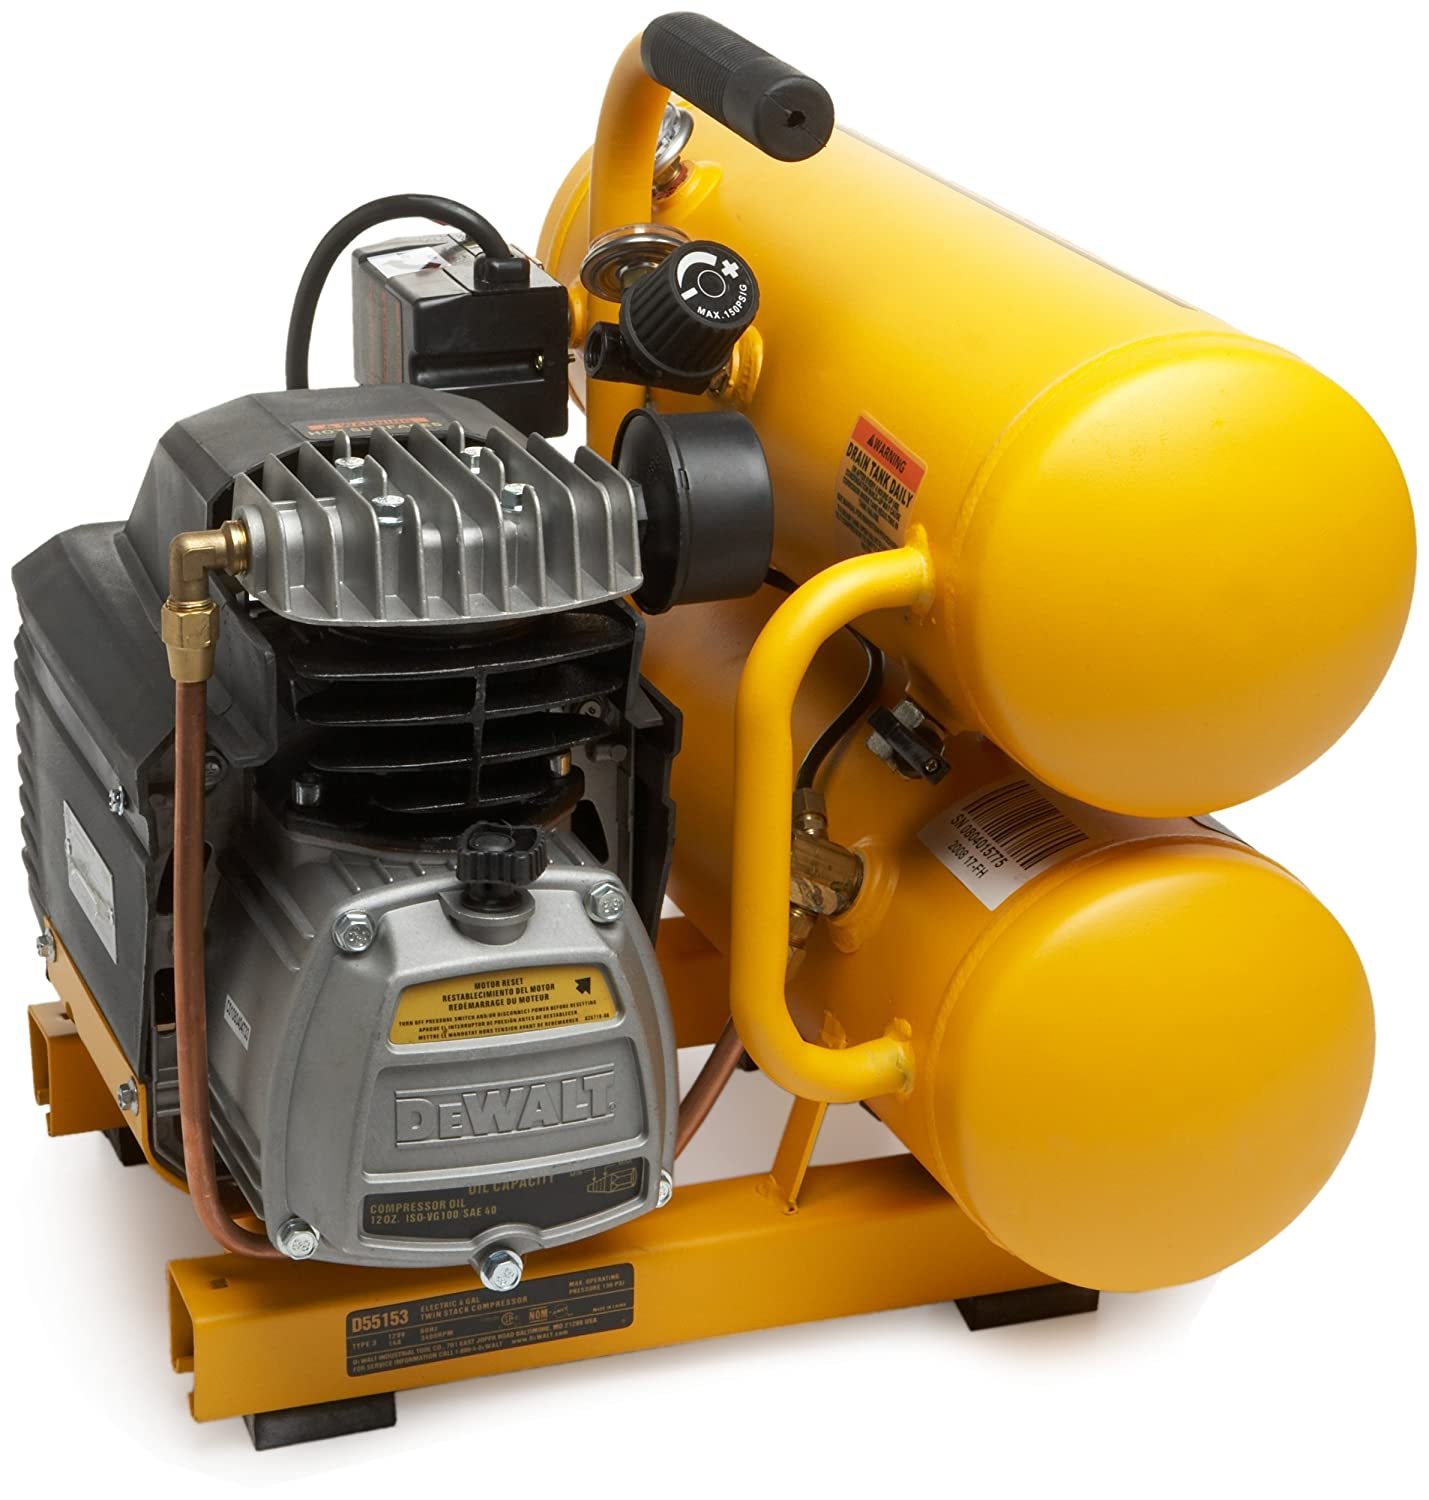 DEWALT D55153 15 Amp 1-Horsepower 4 Gallon Oiled Twin Hot Dog Compressor: Amazon.es: Bricolaje y herramientas